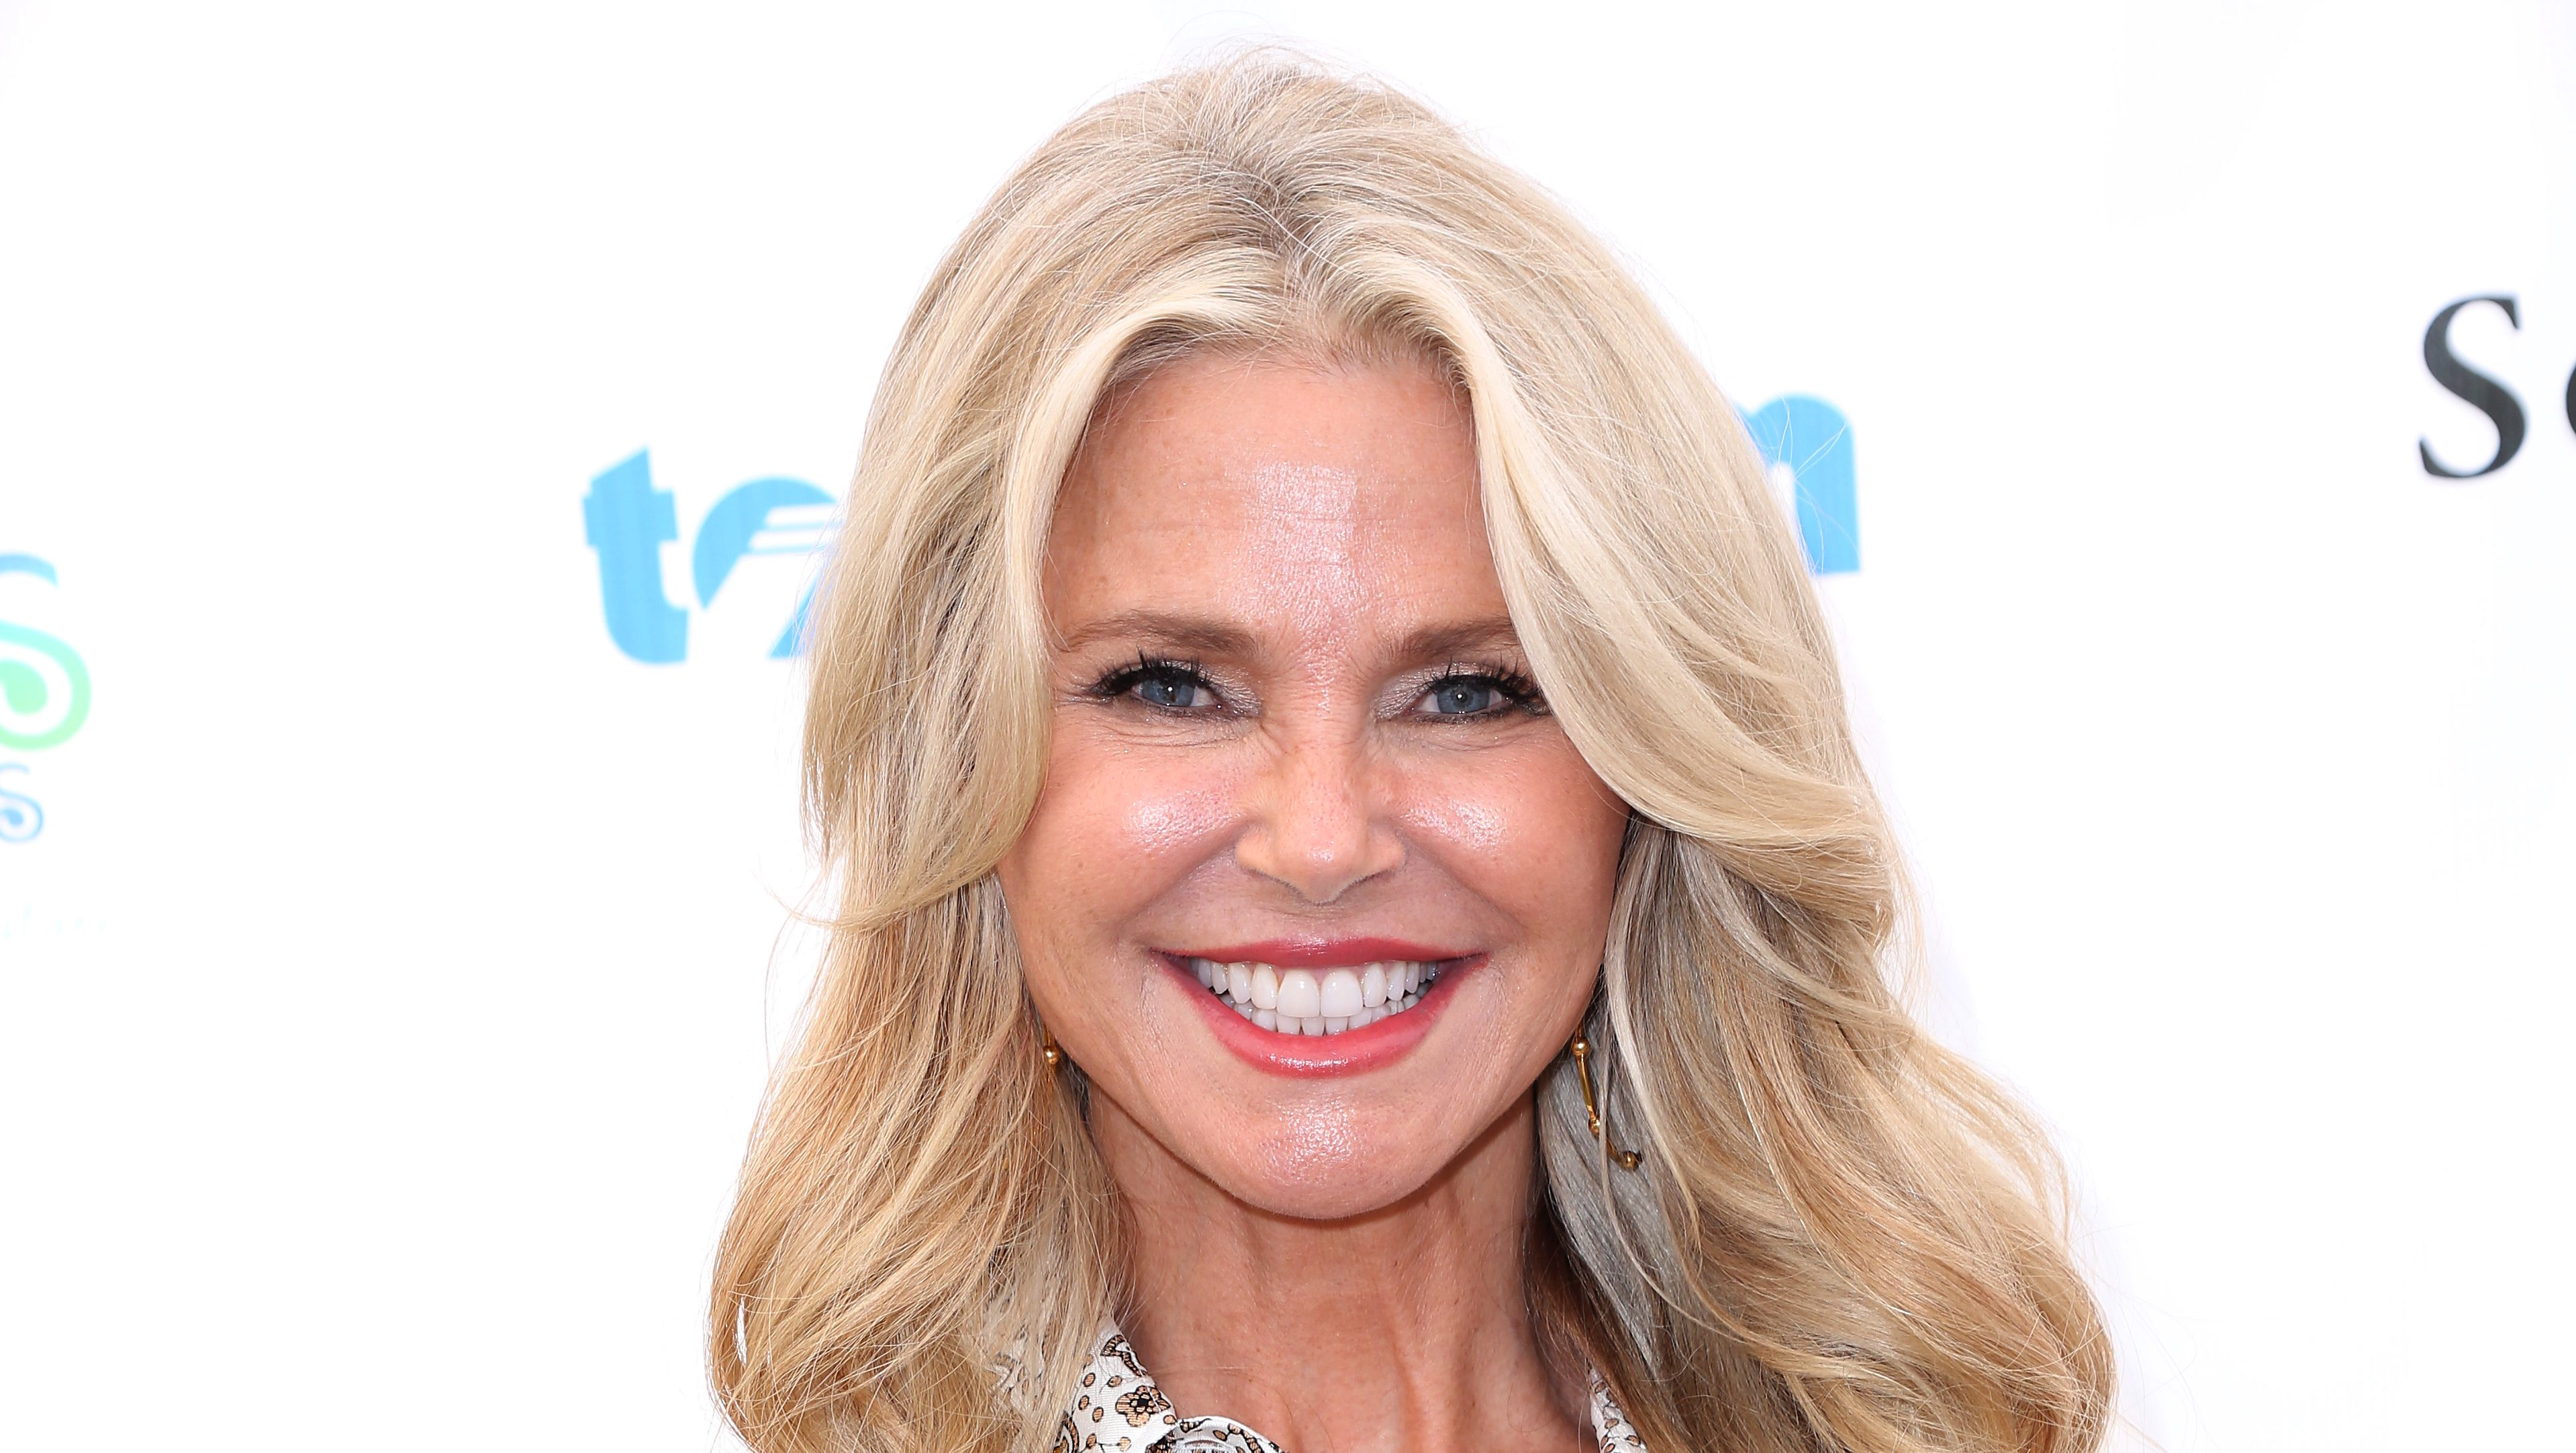 Christie Brinkley, 65, Celebrates America and Shows Off Figure in Patriotic Swimsuit — Take a Look!